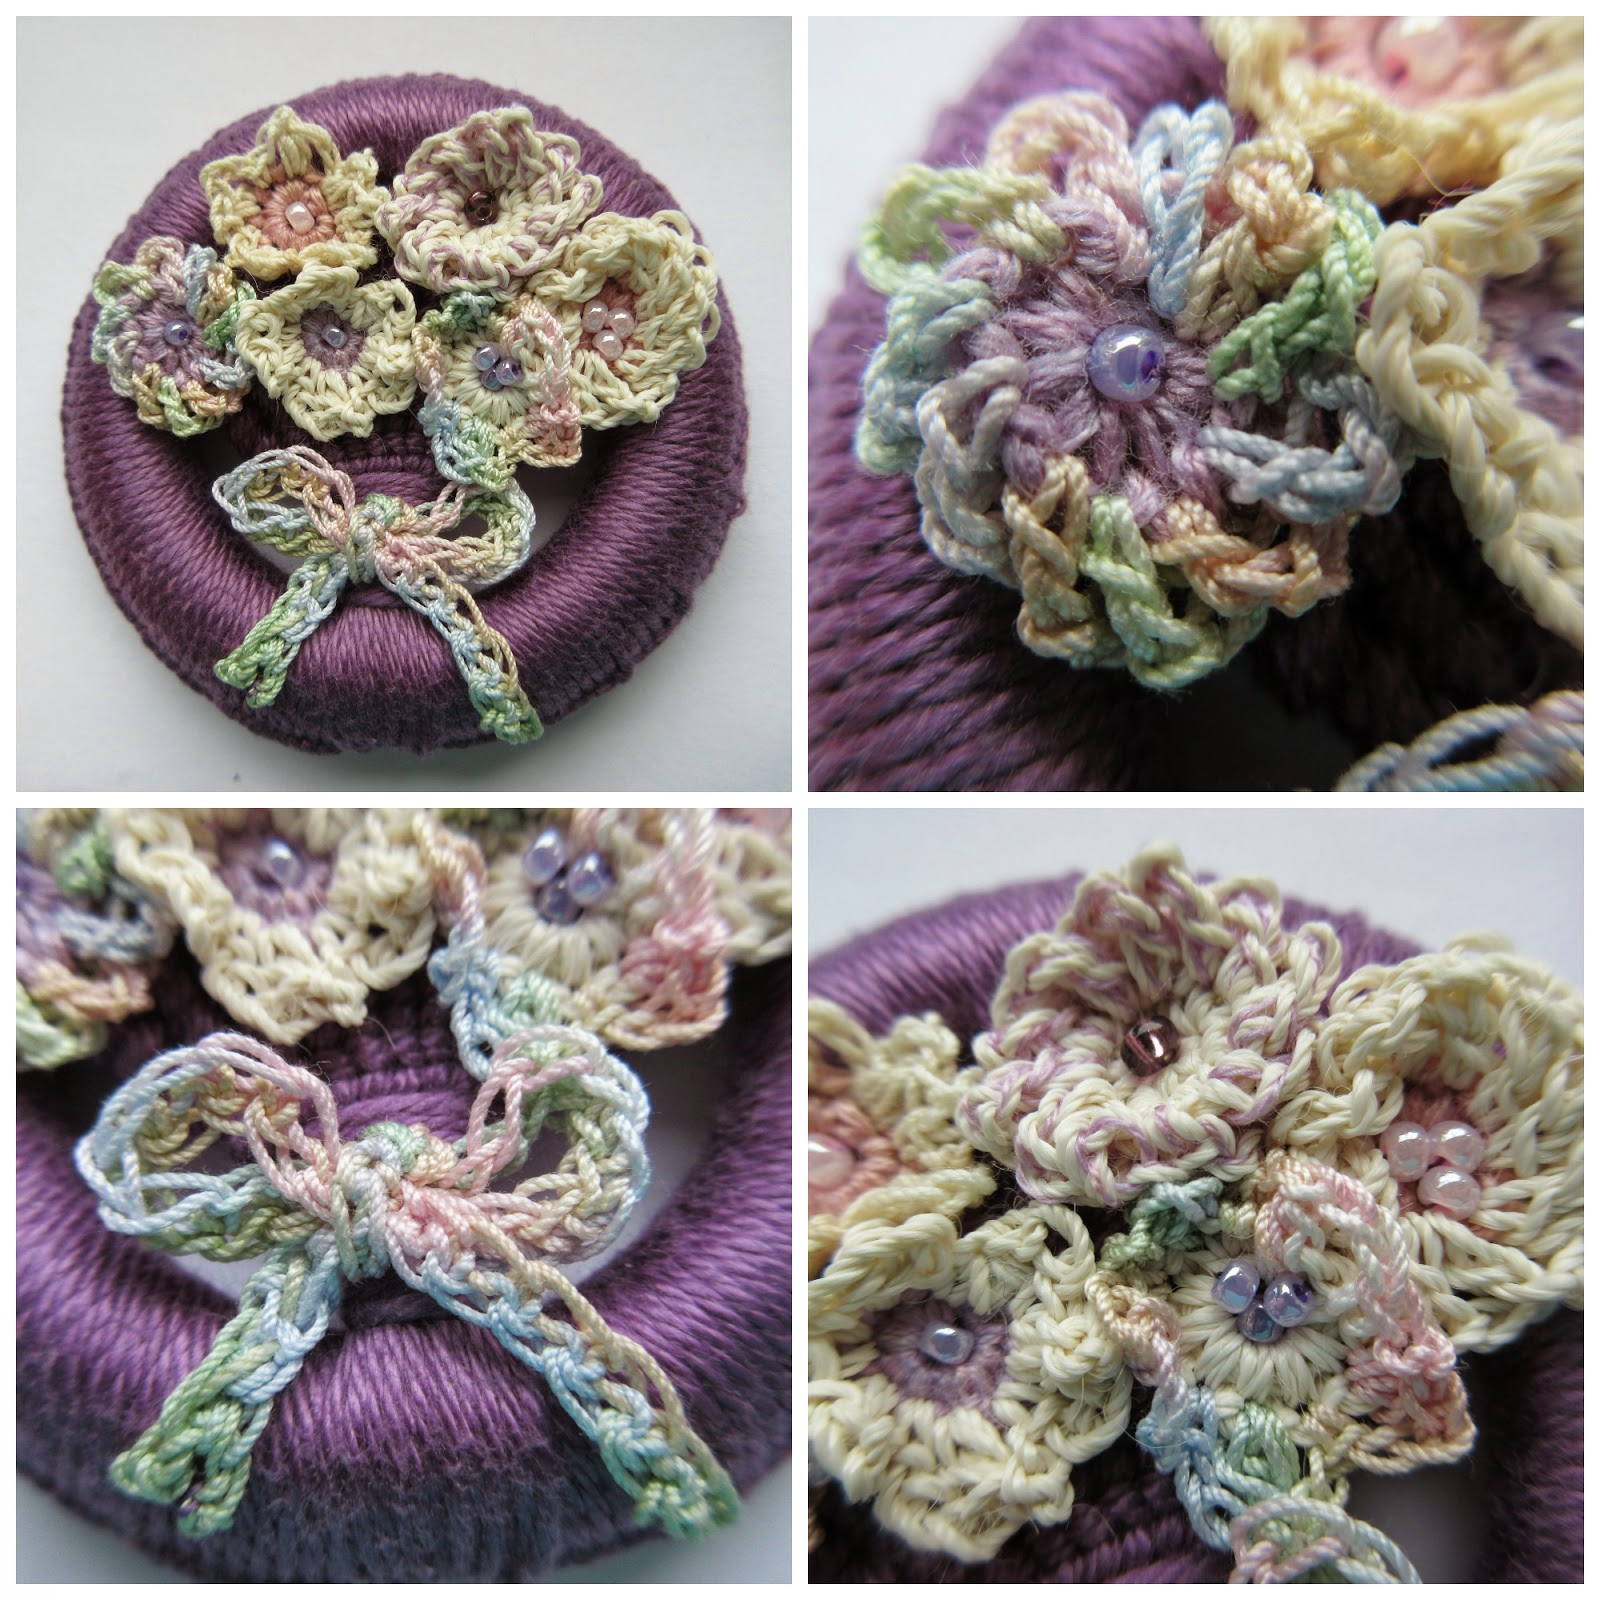 Dorset button with crochet flowers